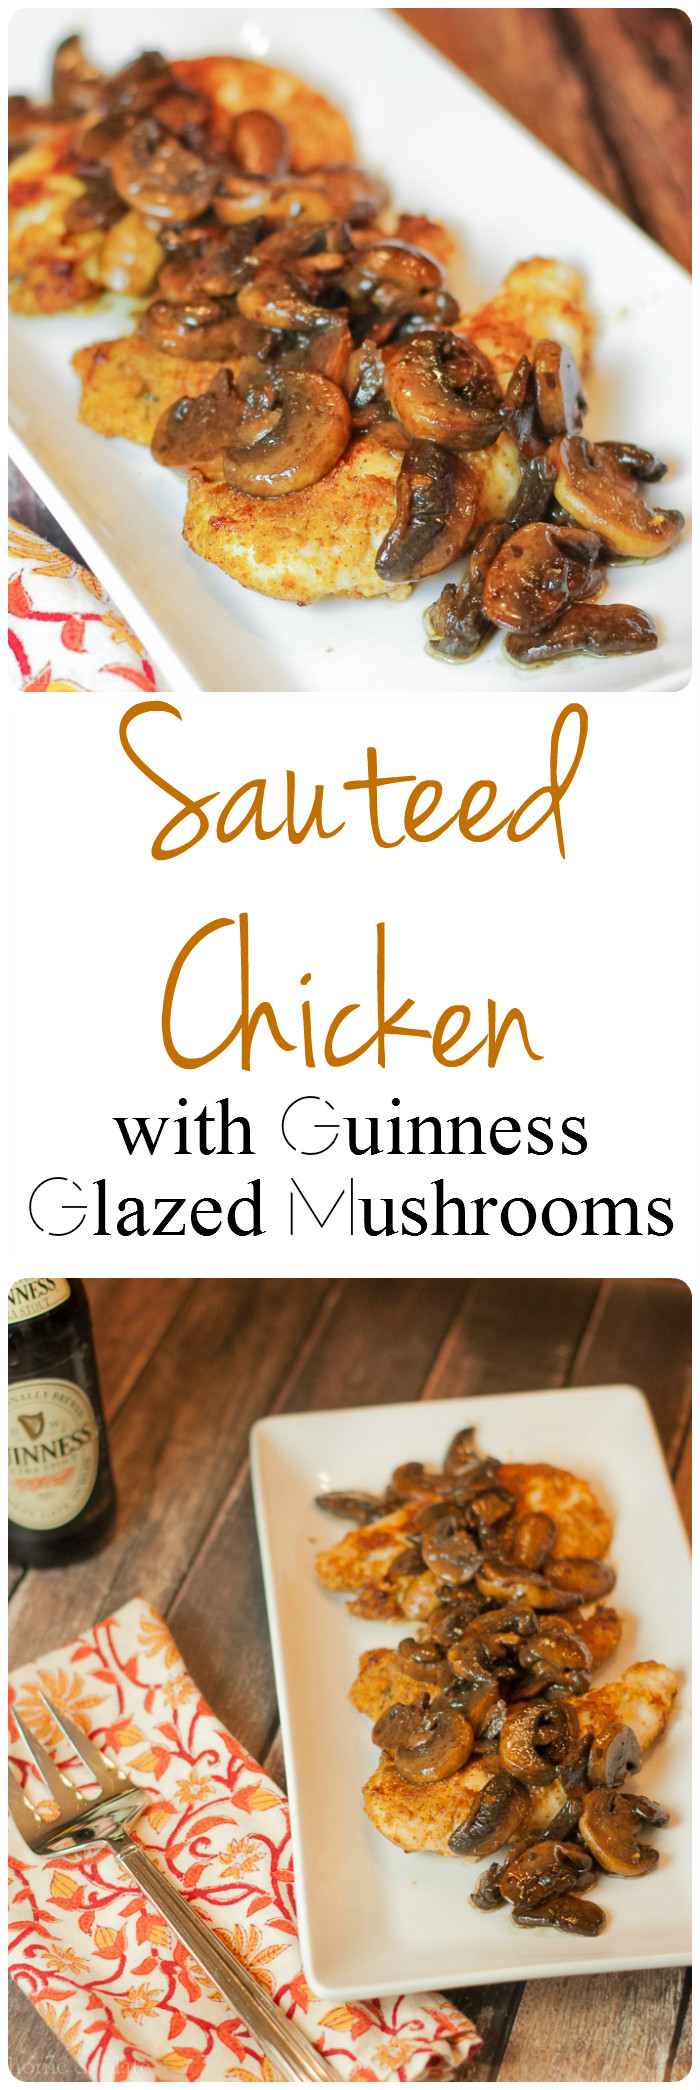 Sauteed Chicken with Guinness Glazed Mushrooms | Home & Plate | www.homeandplate.com | Sauteed chicken with beer soaked button mushrooms can be made up in 30 minutes for a quick meal.